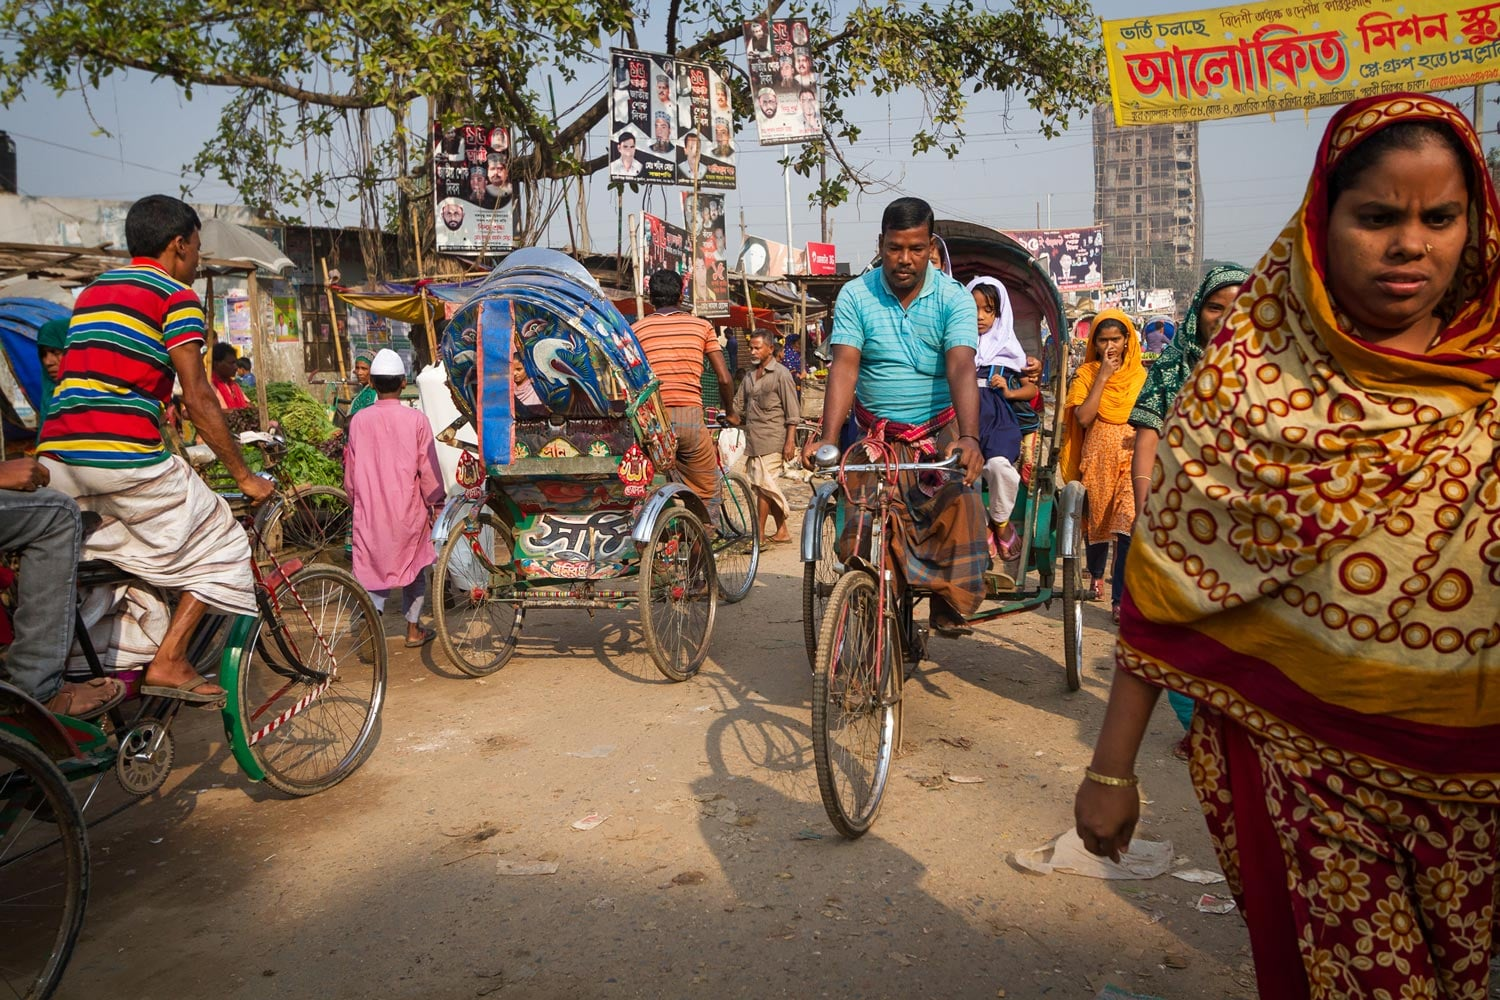 """Azharul Islam (in blue shirt) takes Moni and Aduri to school on his rickshaw. """"I am very concerned about my daughters,"""" he says. """"It is my responsibility to keep them safe in this environment."""""""